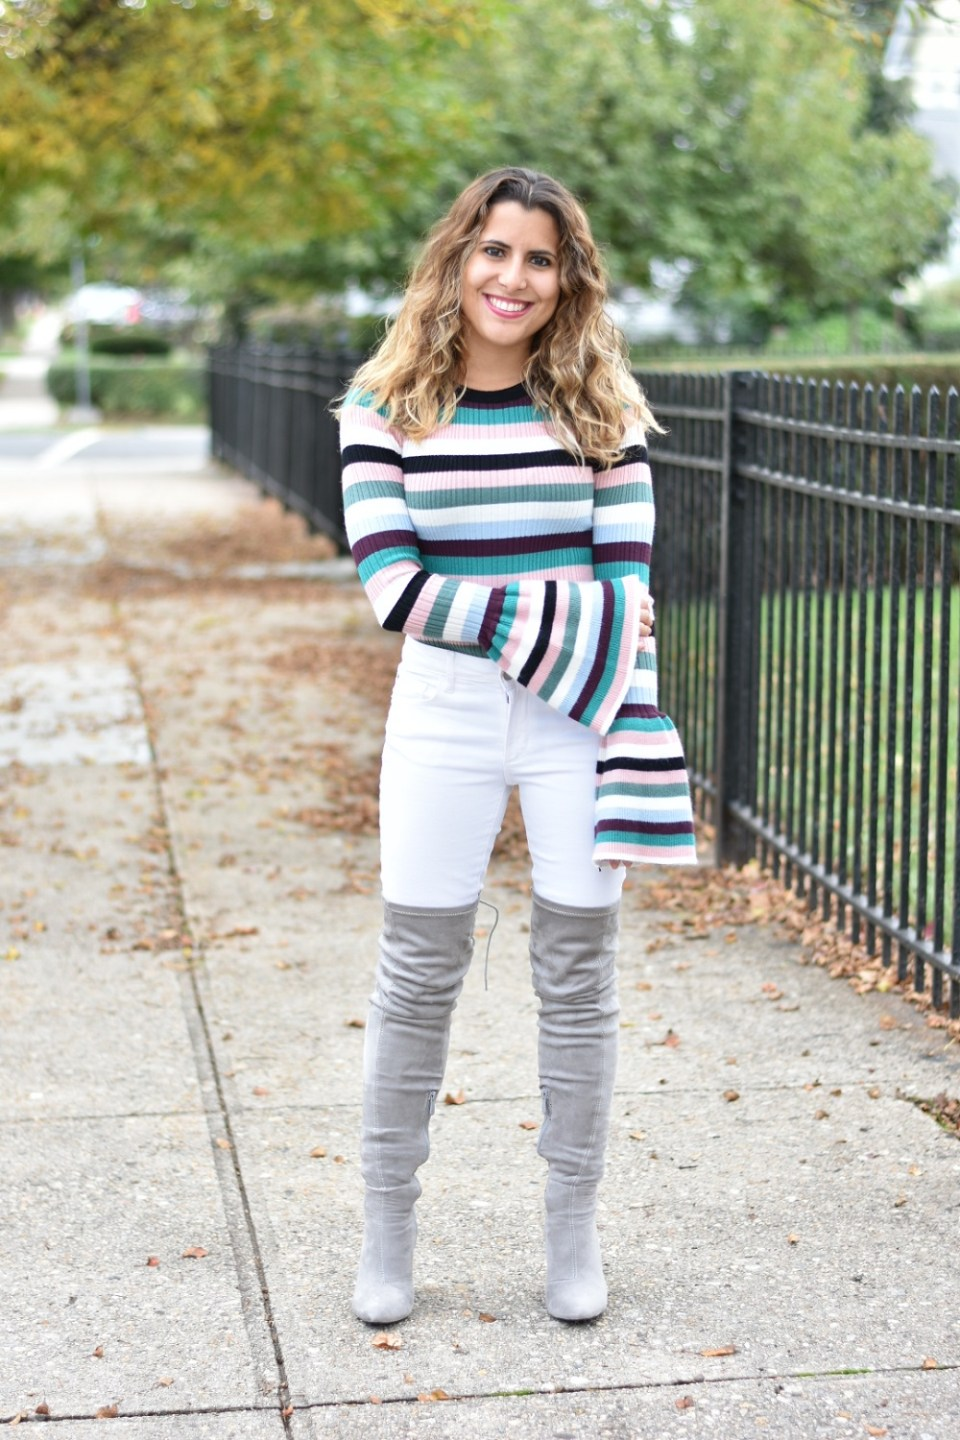 All About the Stripes